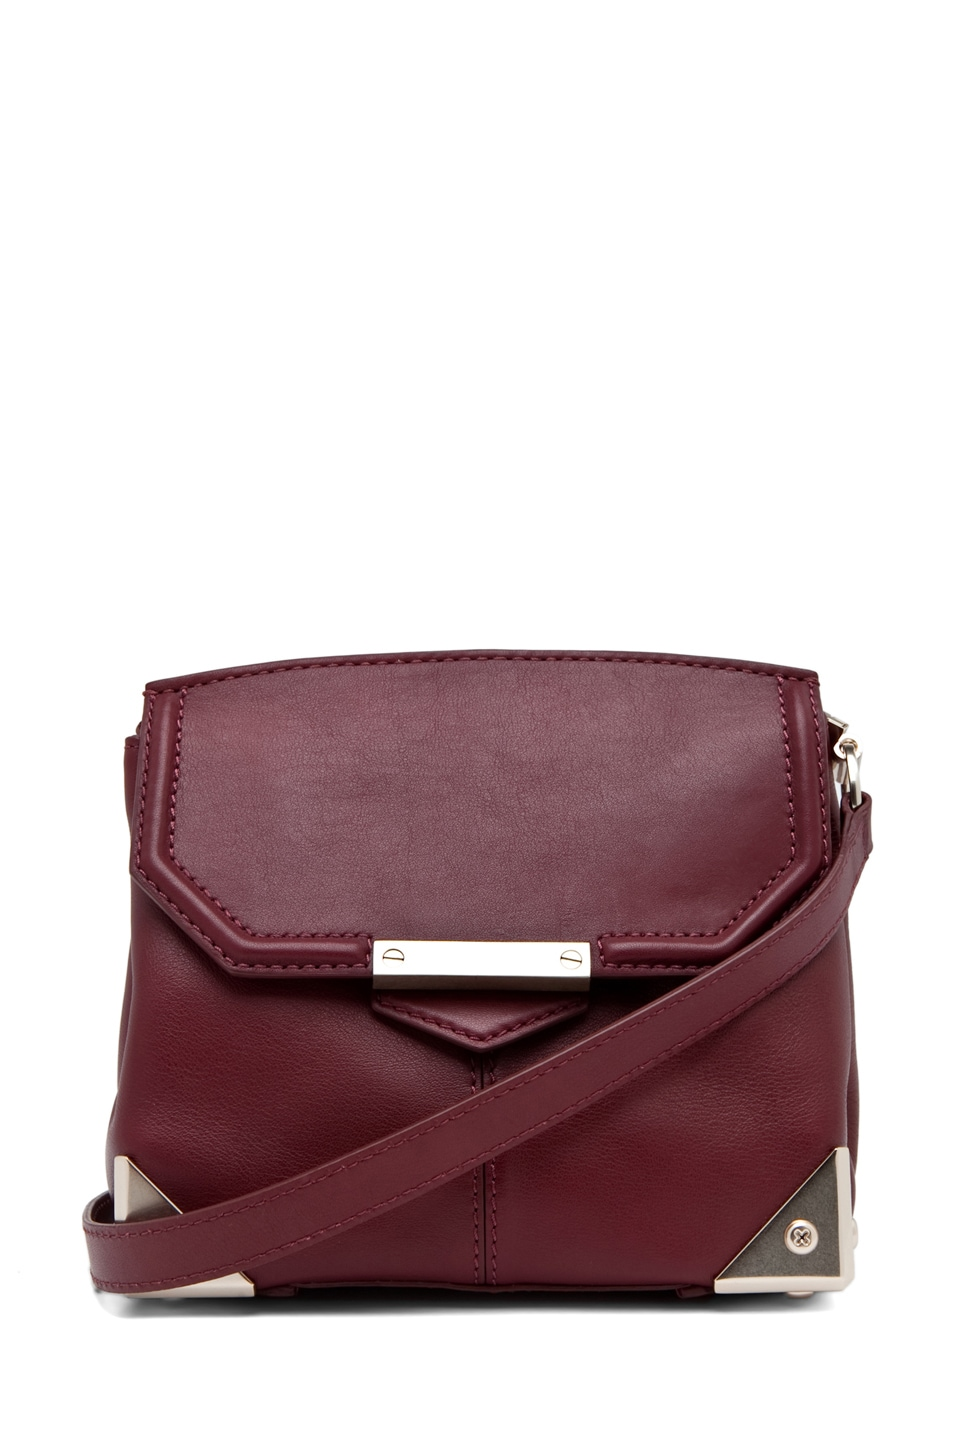 Image 1 of Alexander Wang Marion Sling in Spice